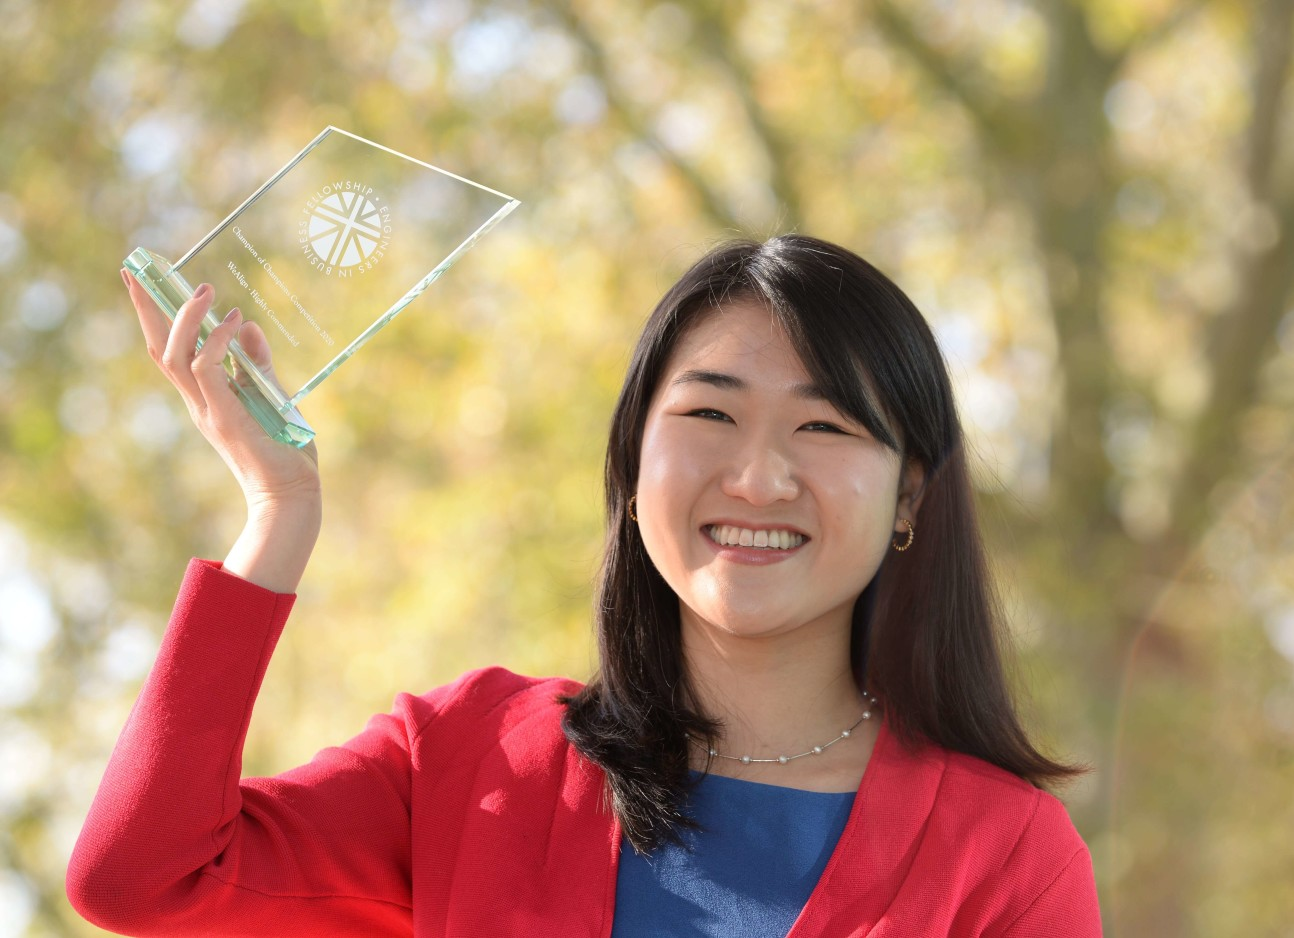 Innovation Design Engineering student WuQing Hipsh holding her award